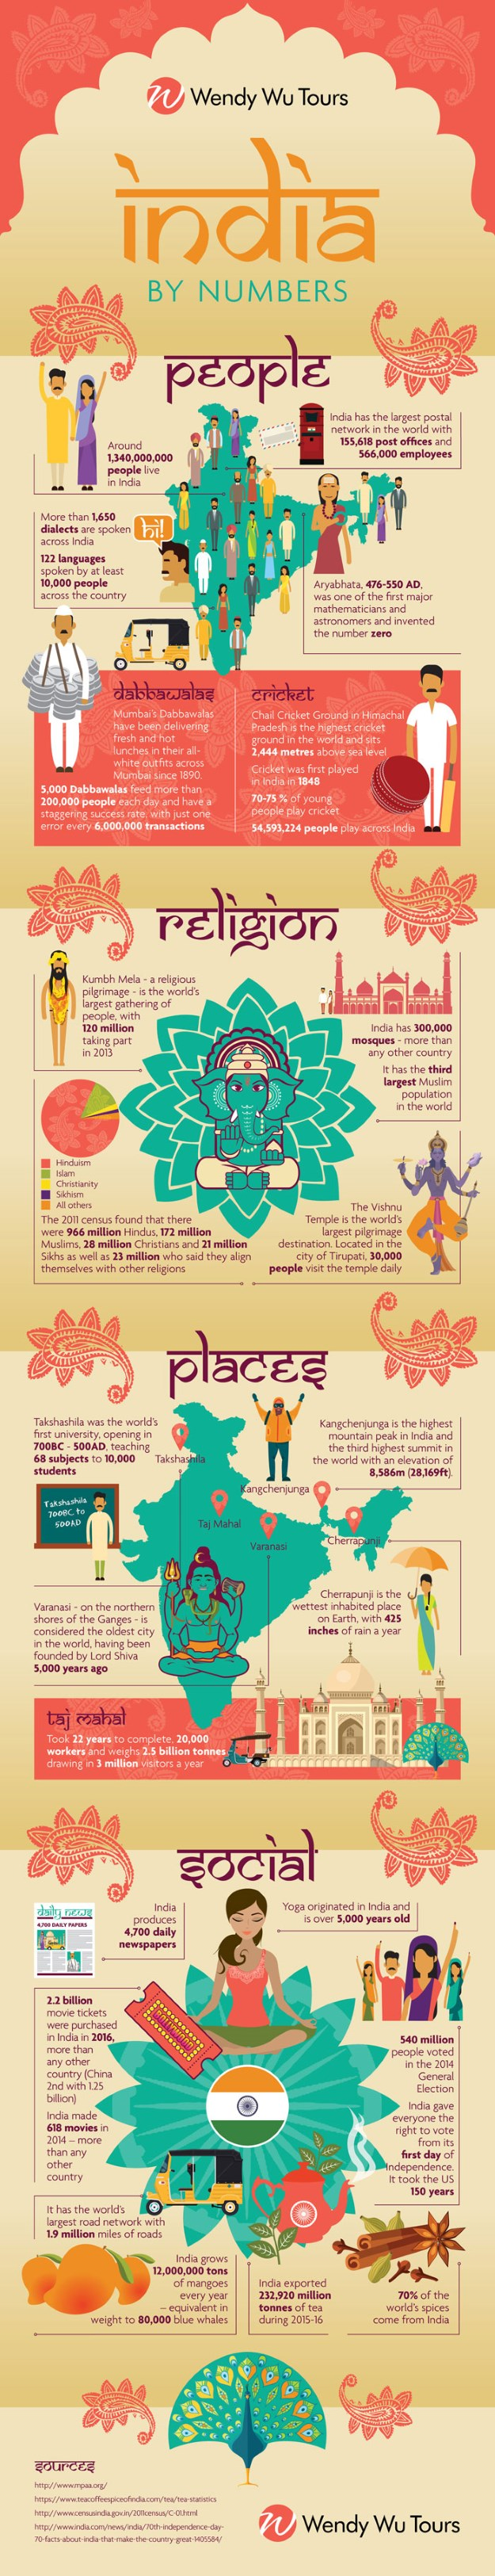 India by numbers infographic